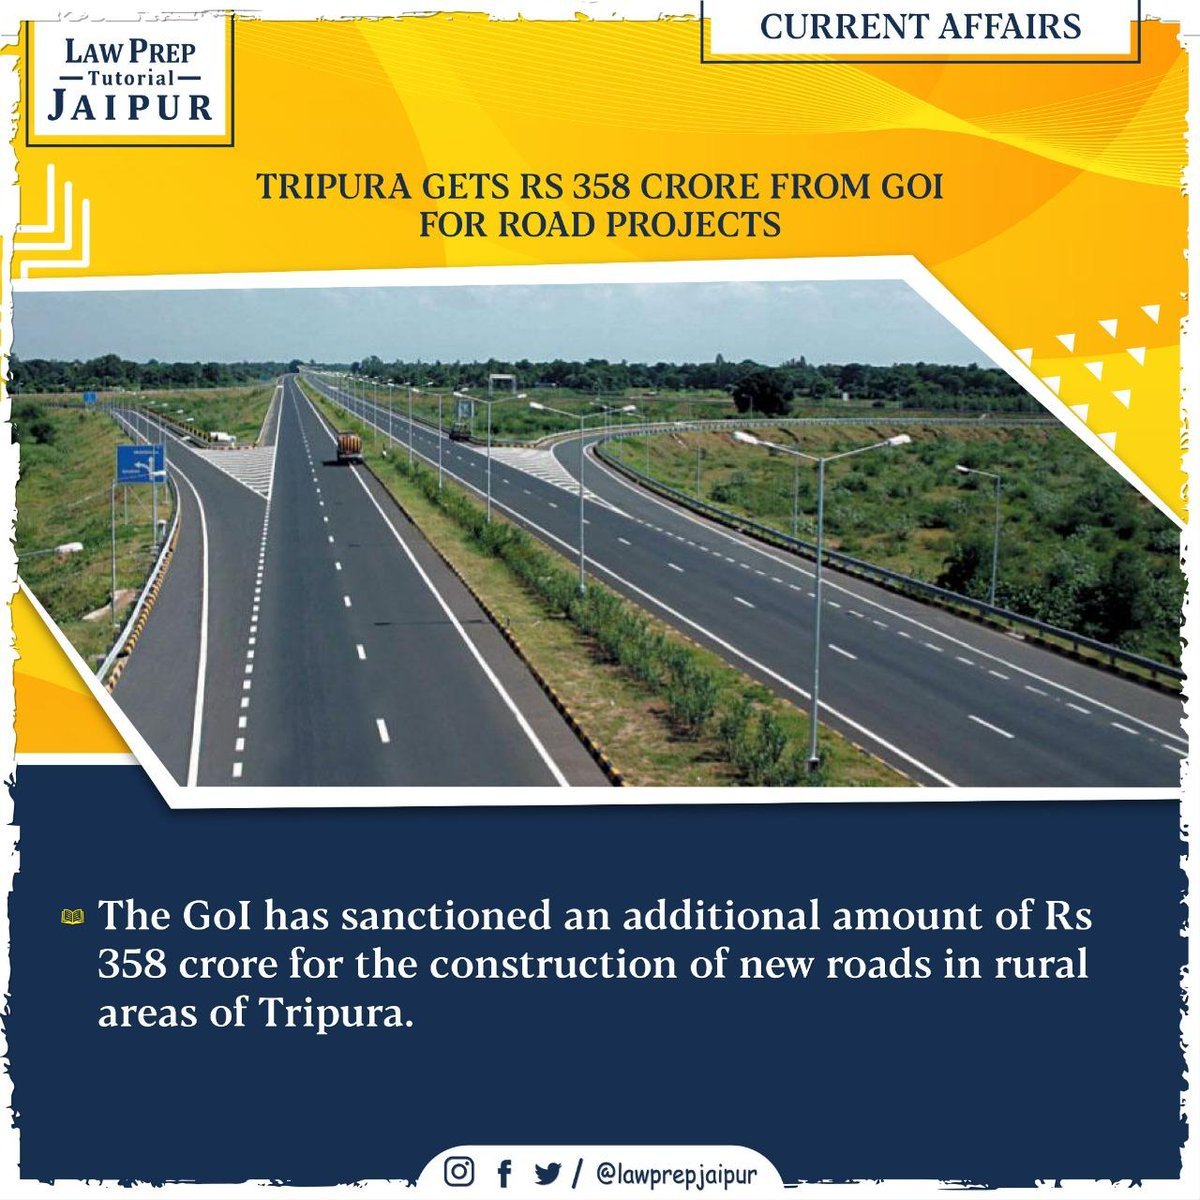 Stay connected for more such Current Affairs.  #Gk #CLATGK #CLAT2020 #CLATQuestions #currentaffairs #LegalGk #Tripura #TripuraRoadProjects